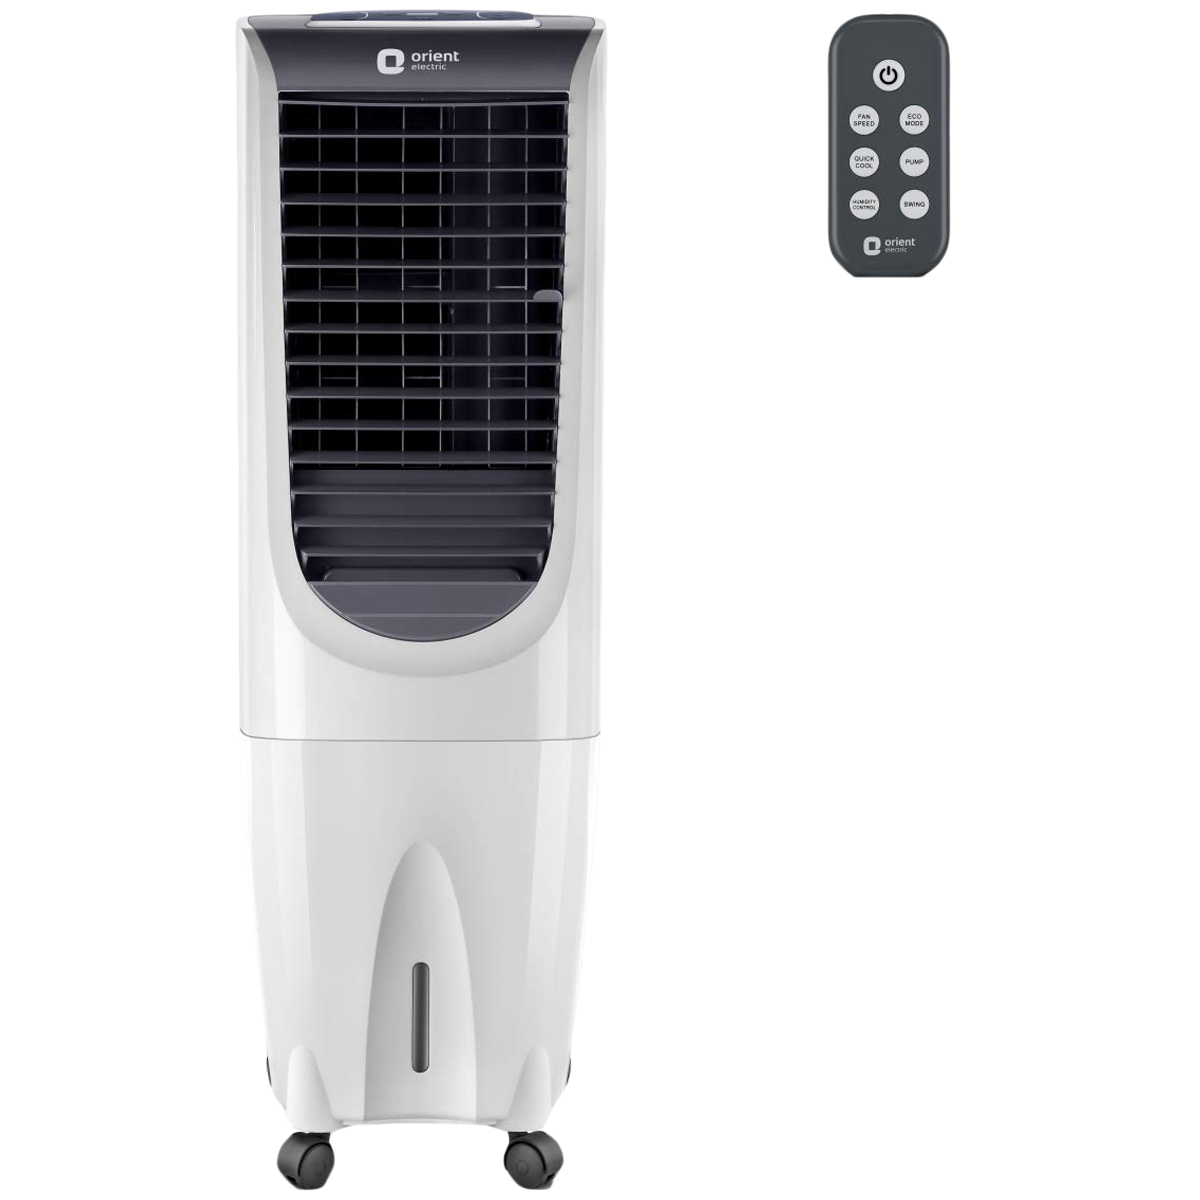 Orient Ultimo Tower 26 Litres Tower Air Cooler (Prevents Mosquito Breeding, CT2604HR, White)_1